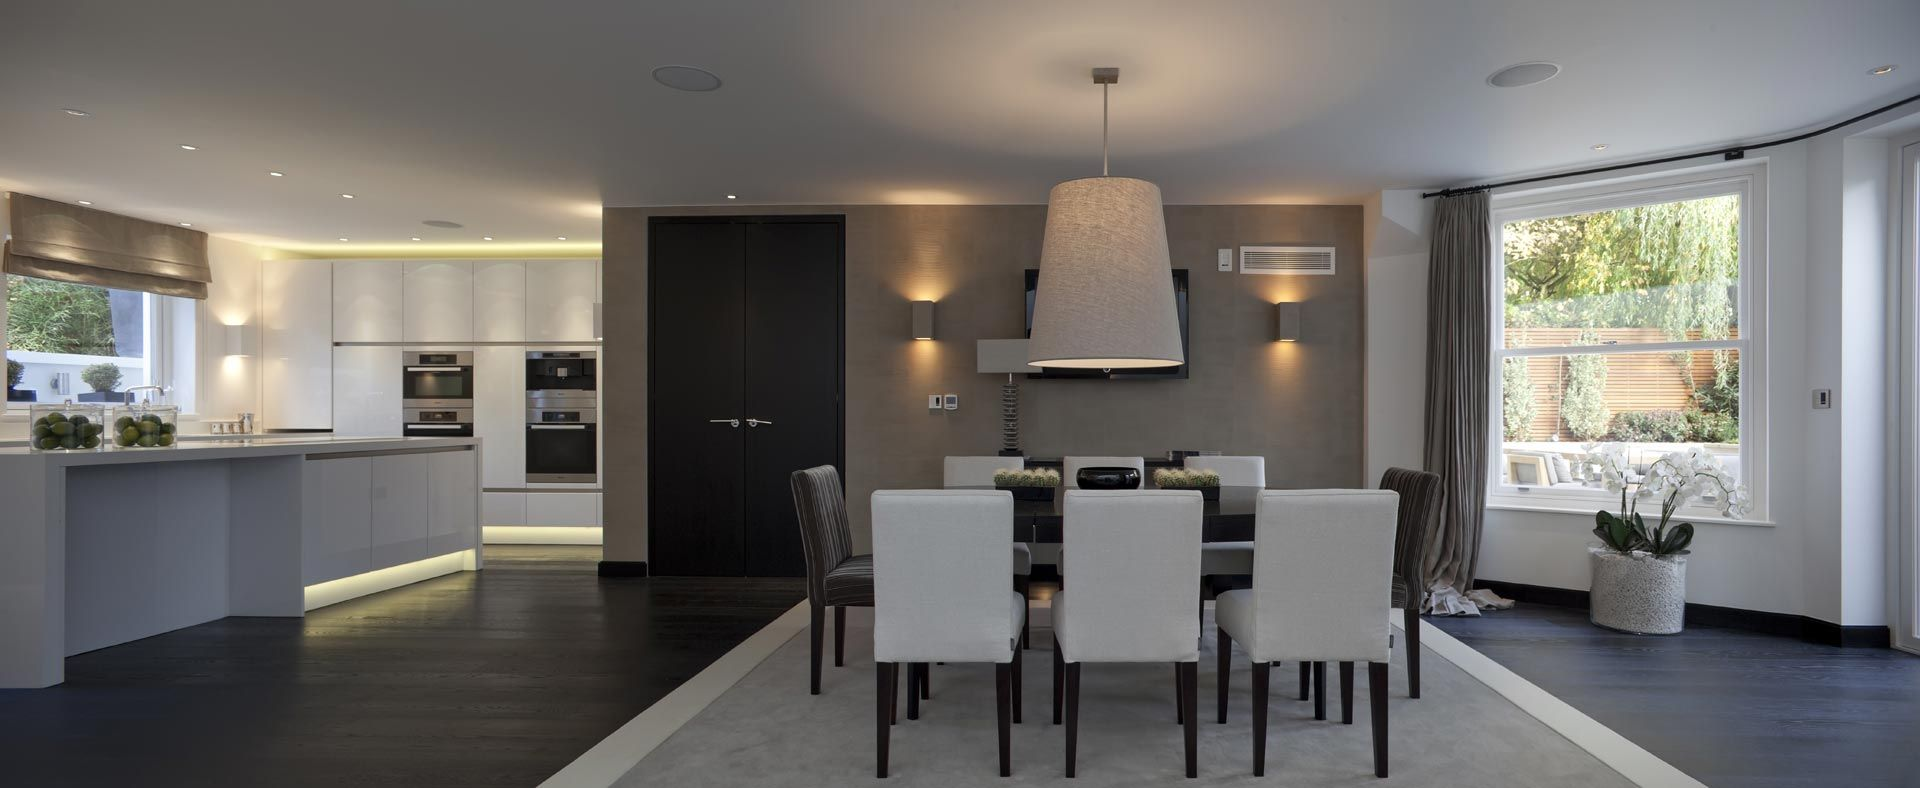 Kelly Hoppen Kitchen Interiors | Kelly Hoppen Couture Seamlessly Blends Her Natural Balance And